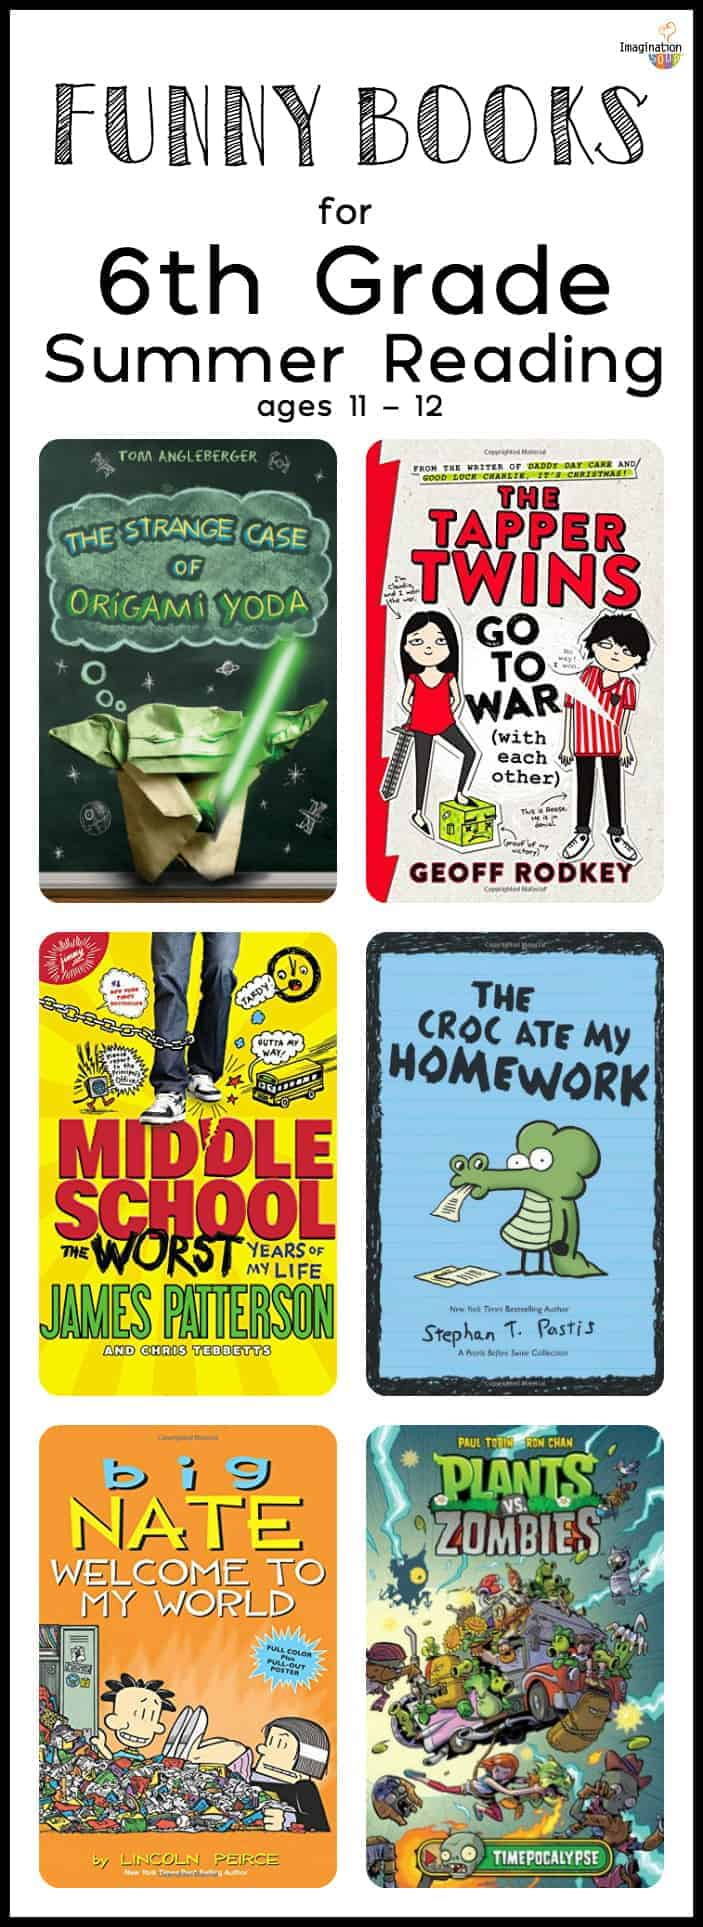 6th Grade Summer Reading List (ages 11 - 12)